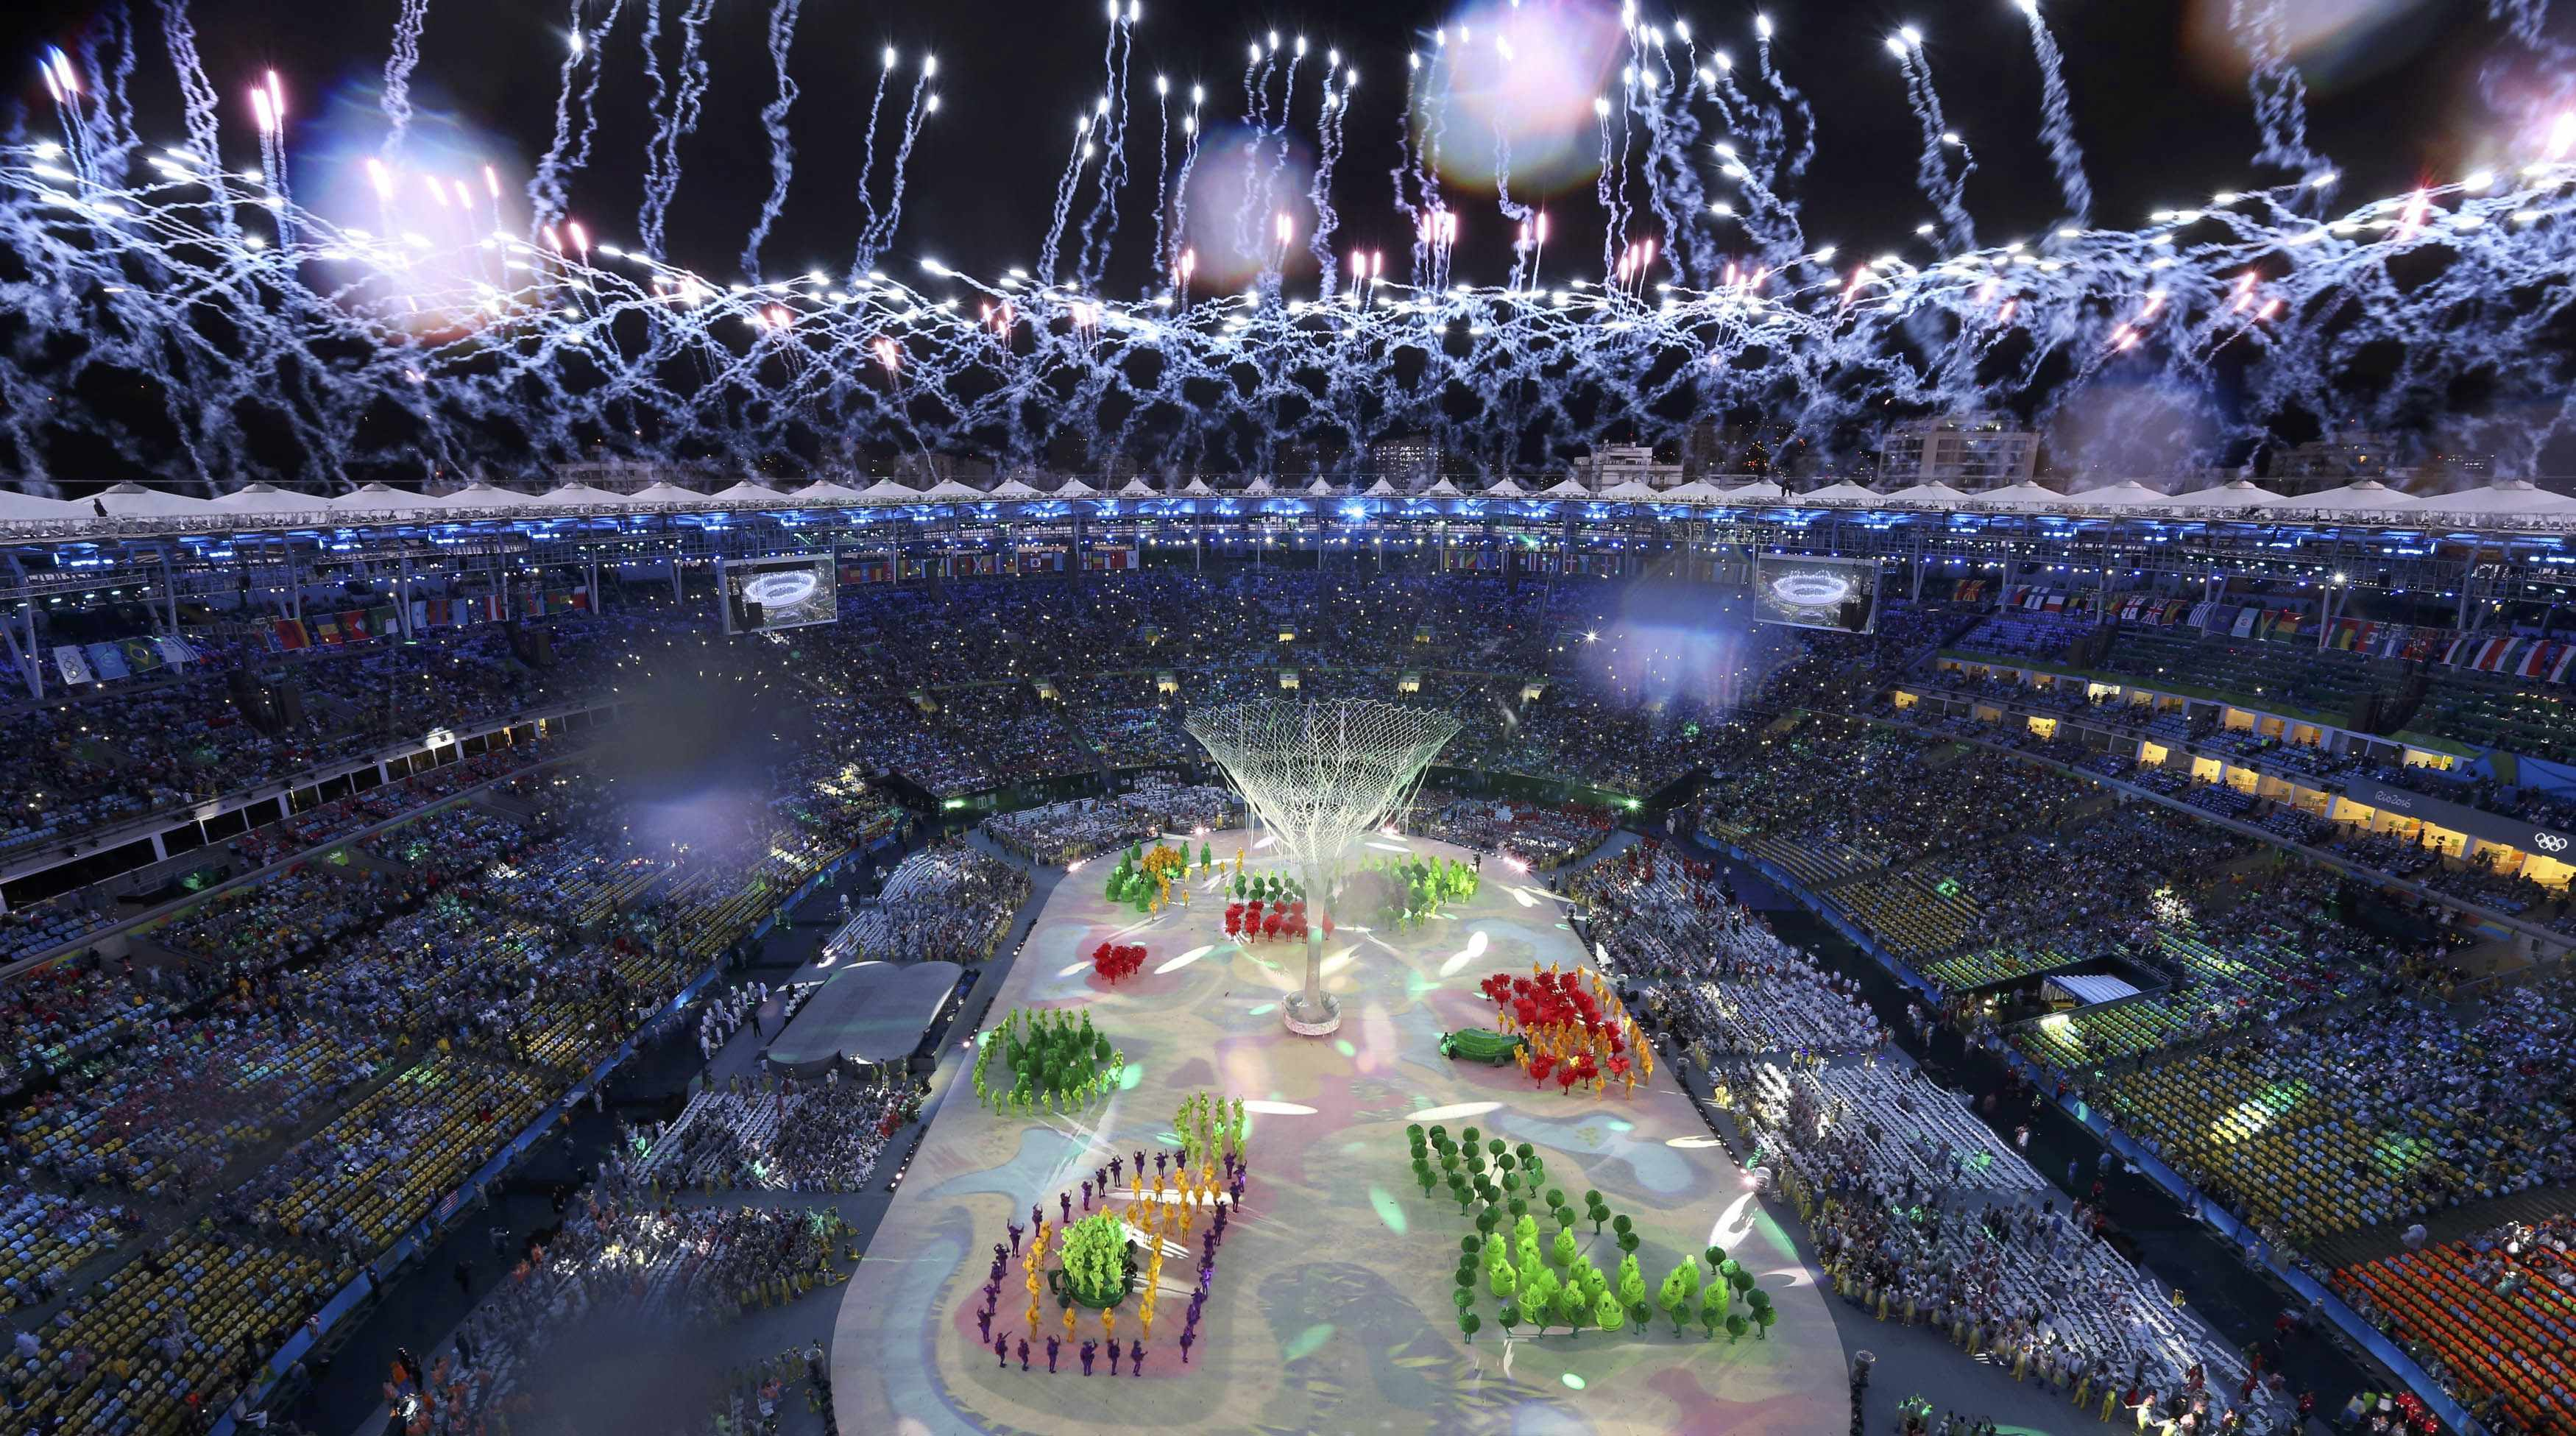 2016 Rio Olympics - Closing ceremony